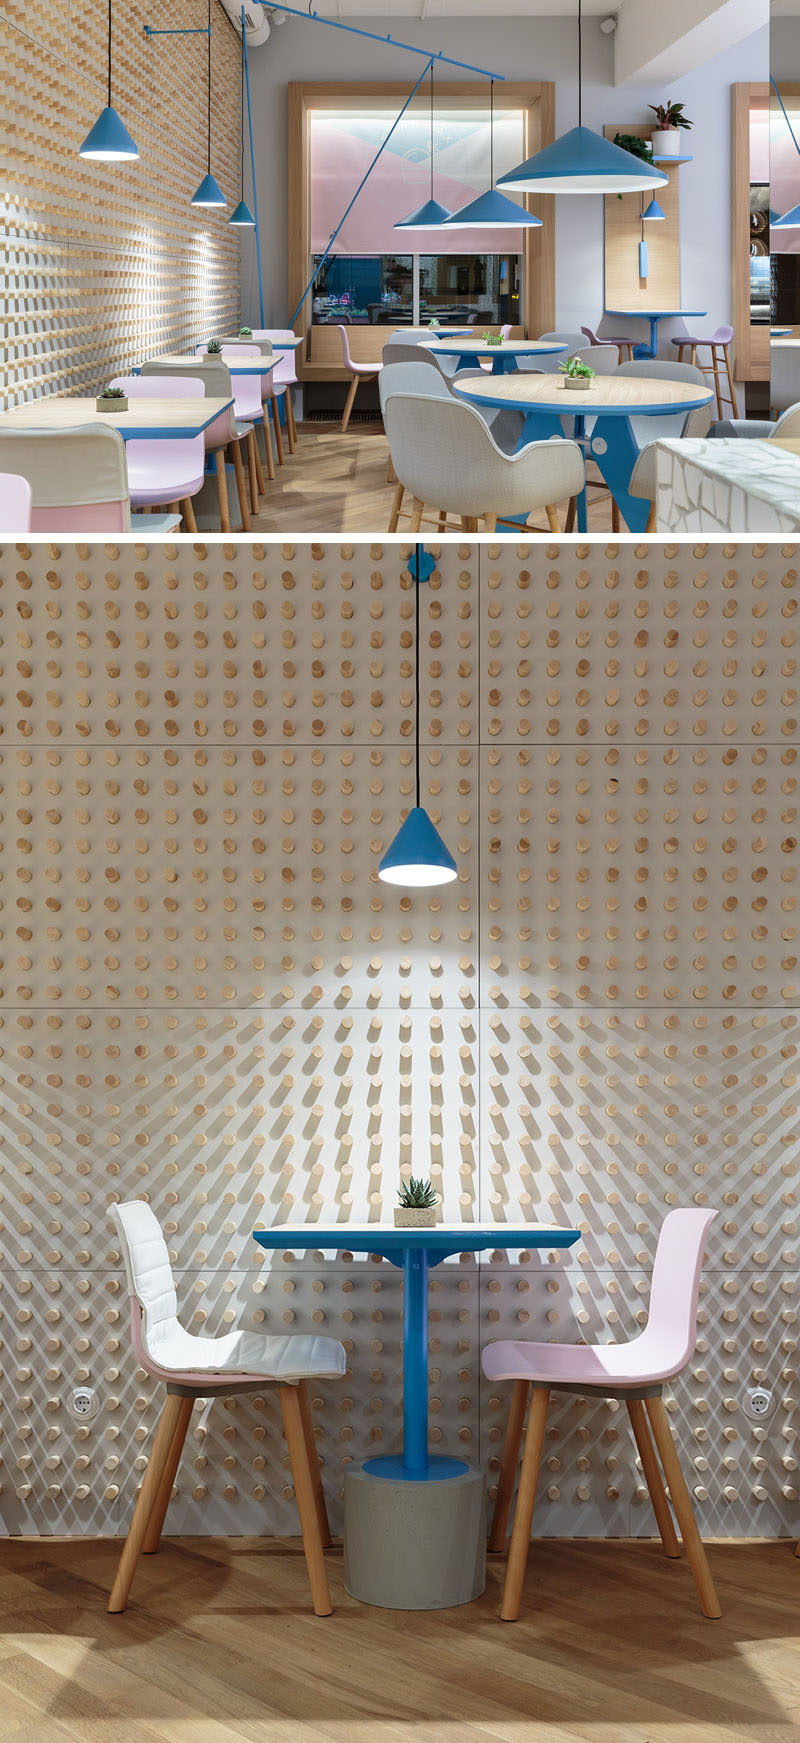 The interior walls of this modern cafe are covered in small dowels, and when combined with lighting, create interesting shadow patterns that highlight the tables. #AccentWall #FeatureWall #CafeDesign #Dowels #InteriorDesign